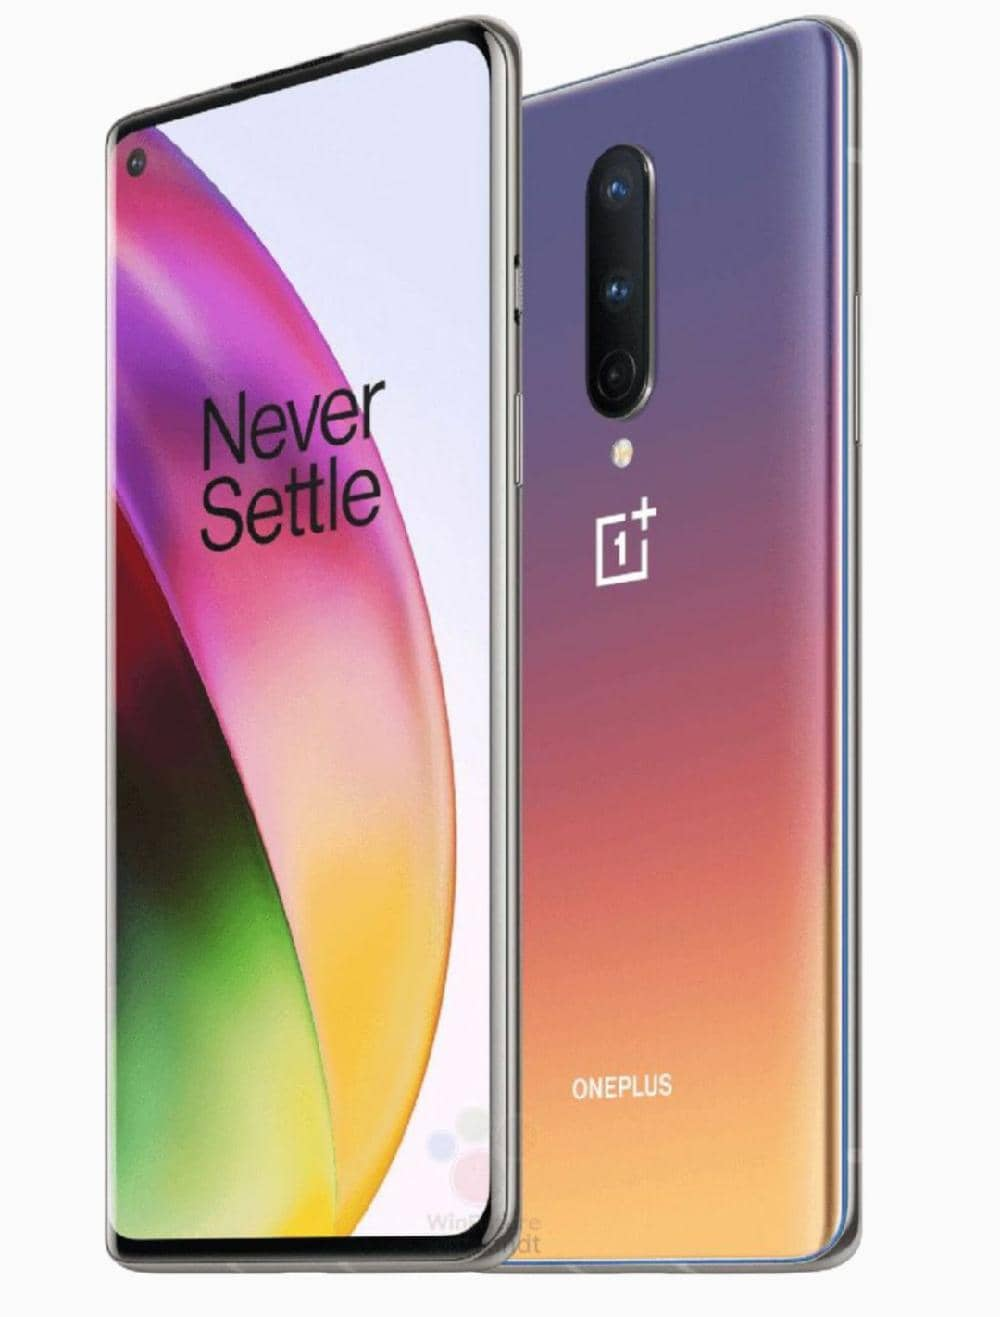 BEST OVERALL PHONE IN JULY 2020